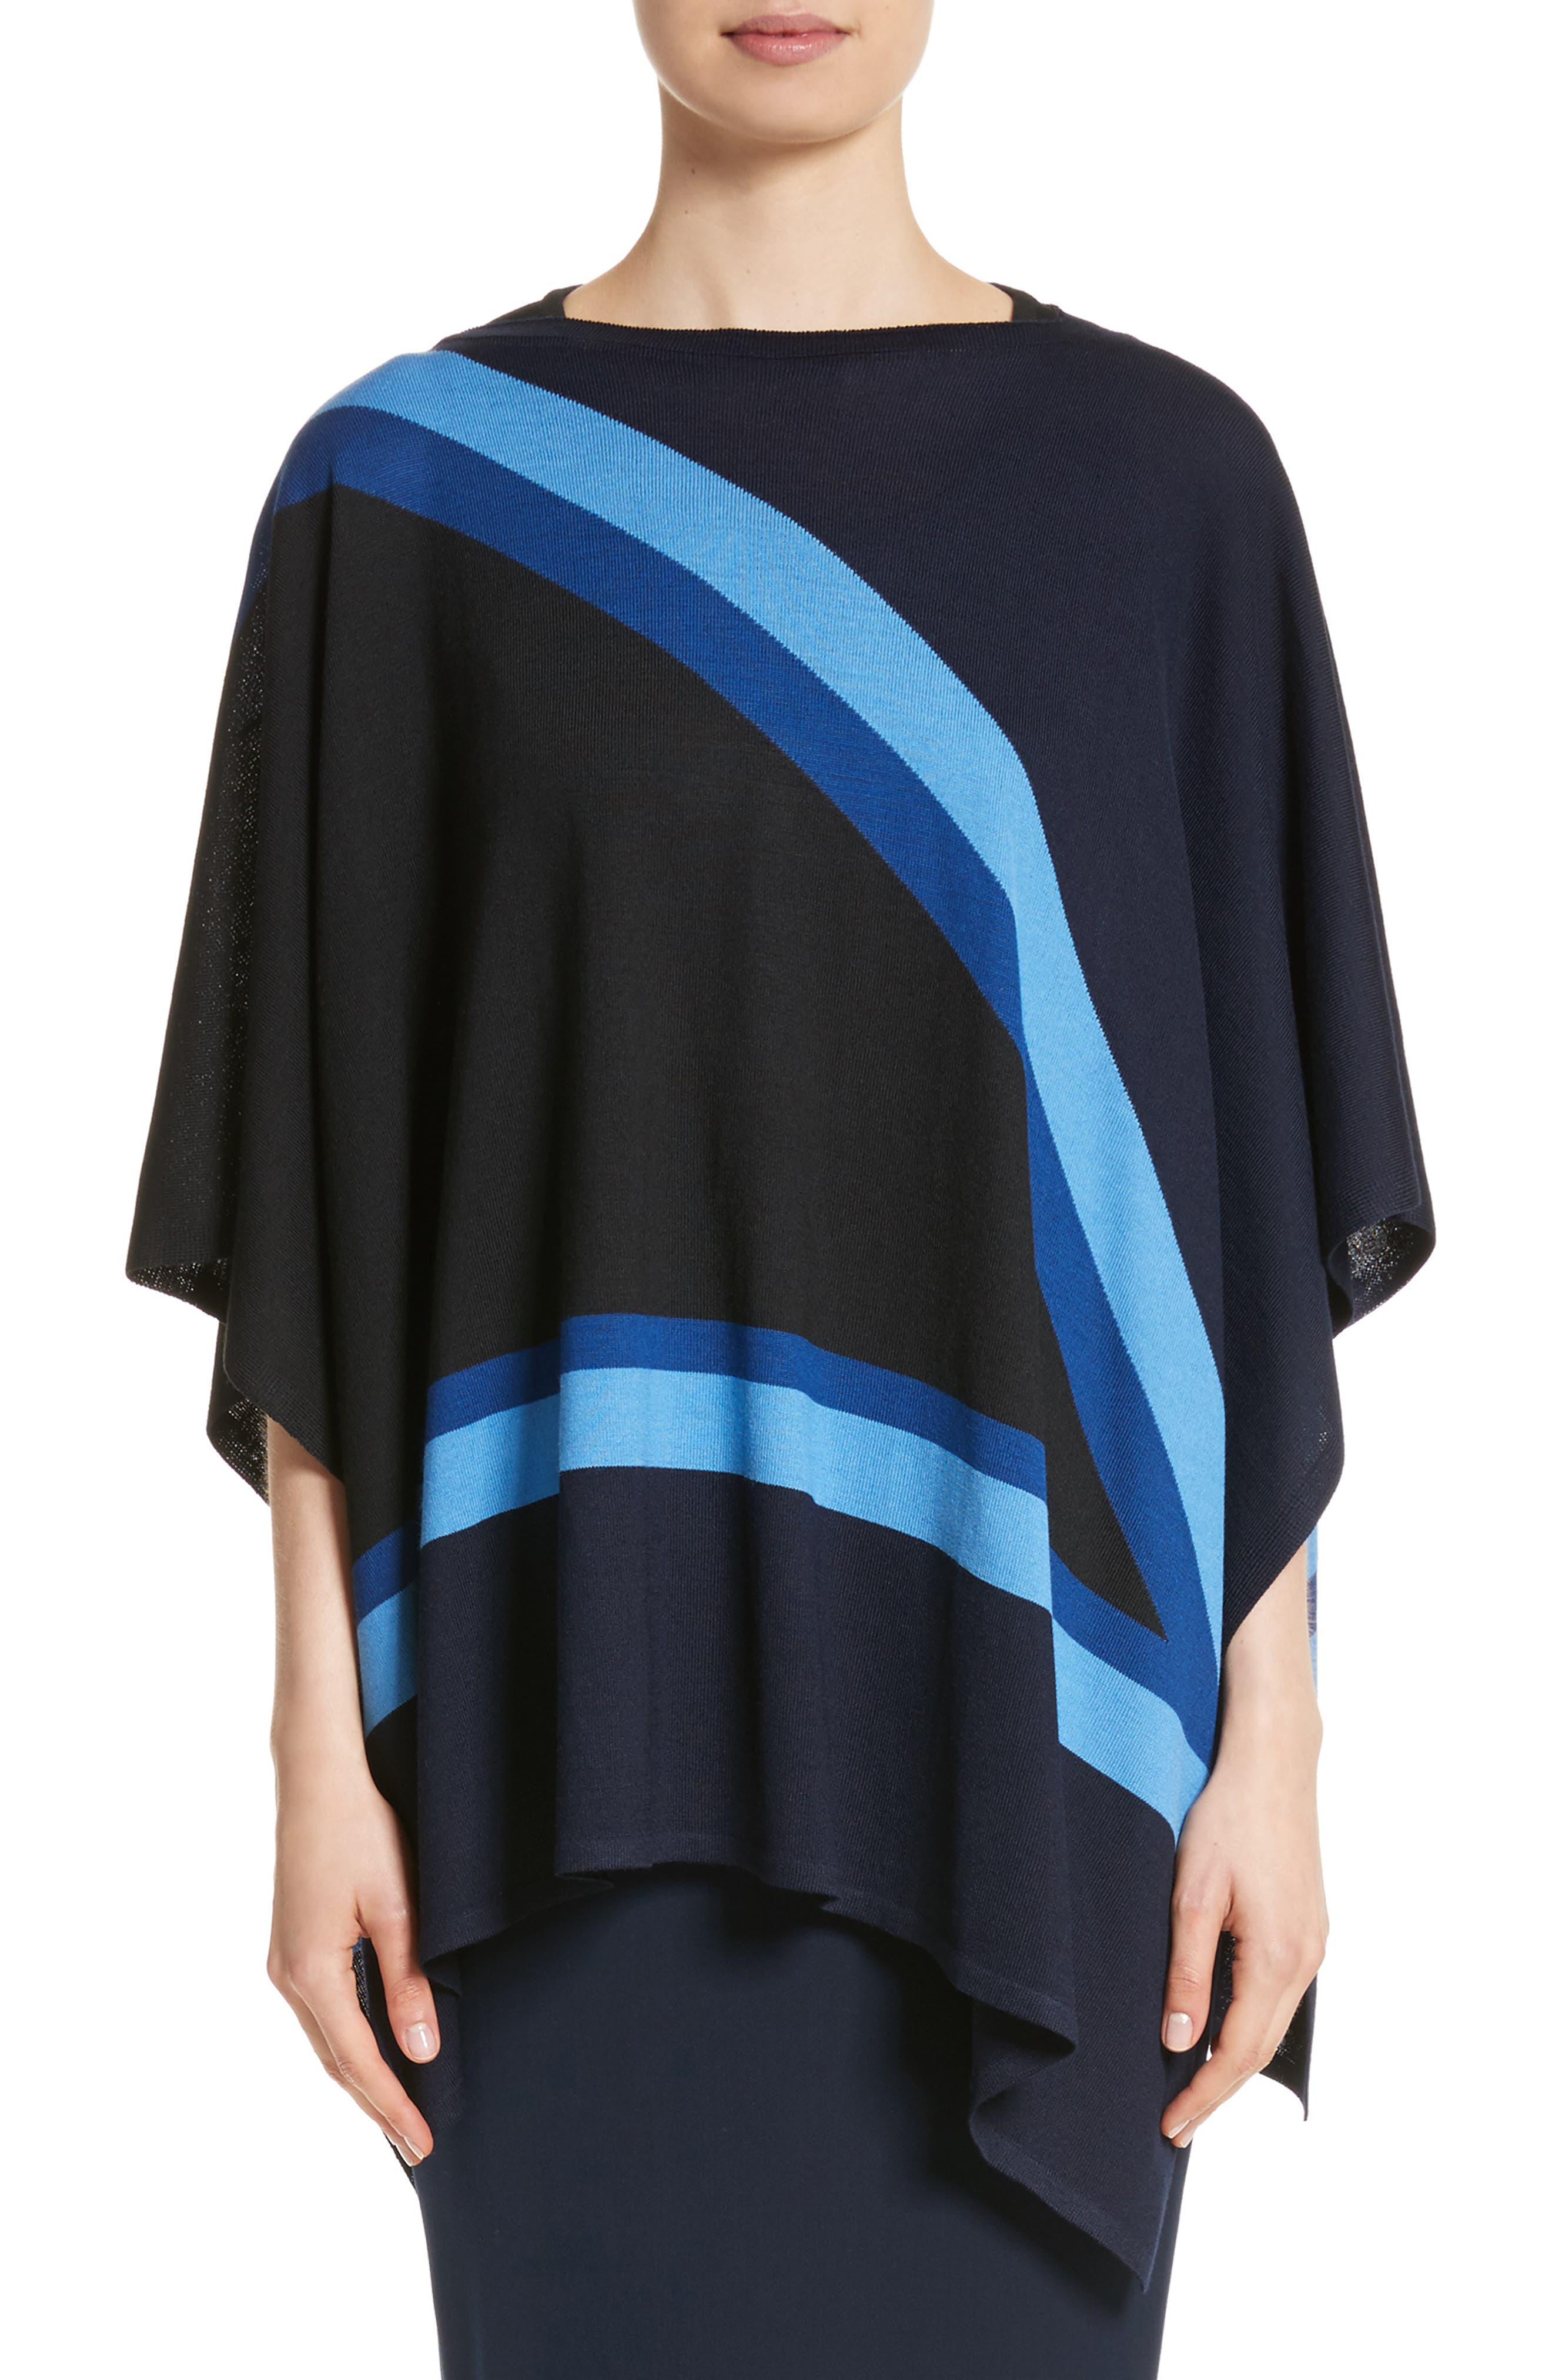 Alternate Image 1 Selected - St. John Collection Intarsia Knit Jersey Poncho